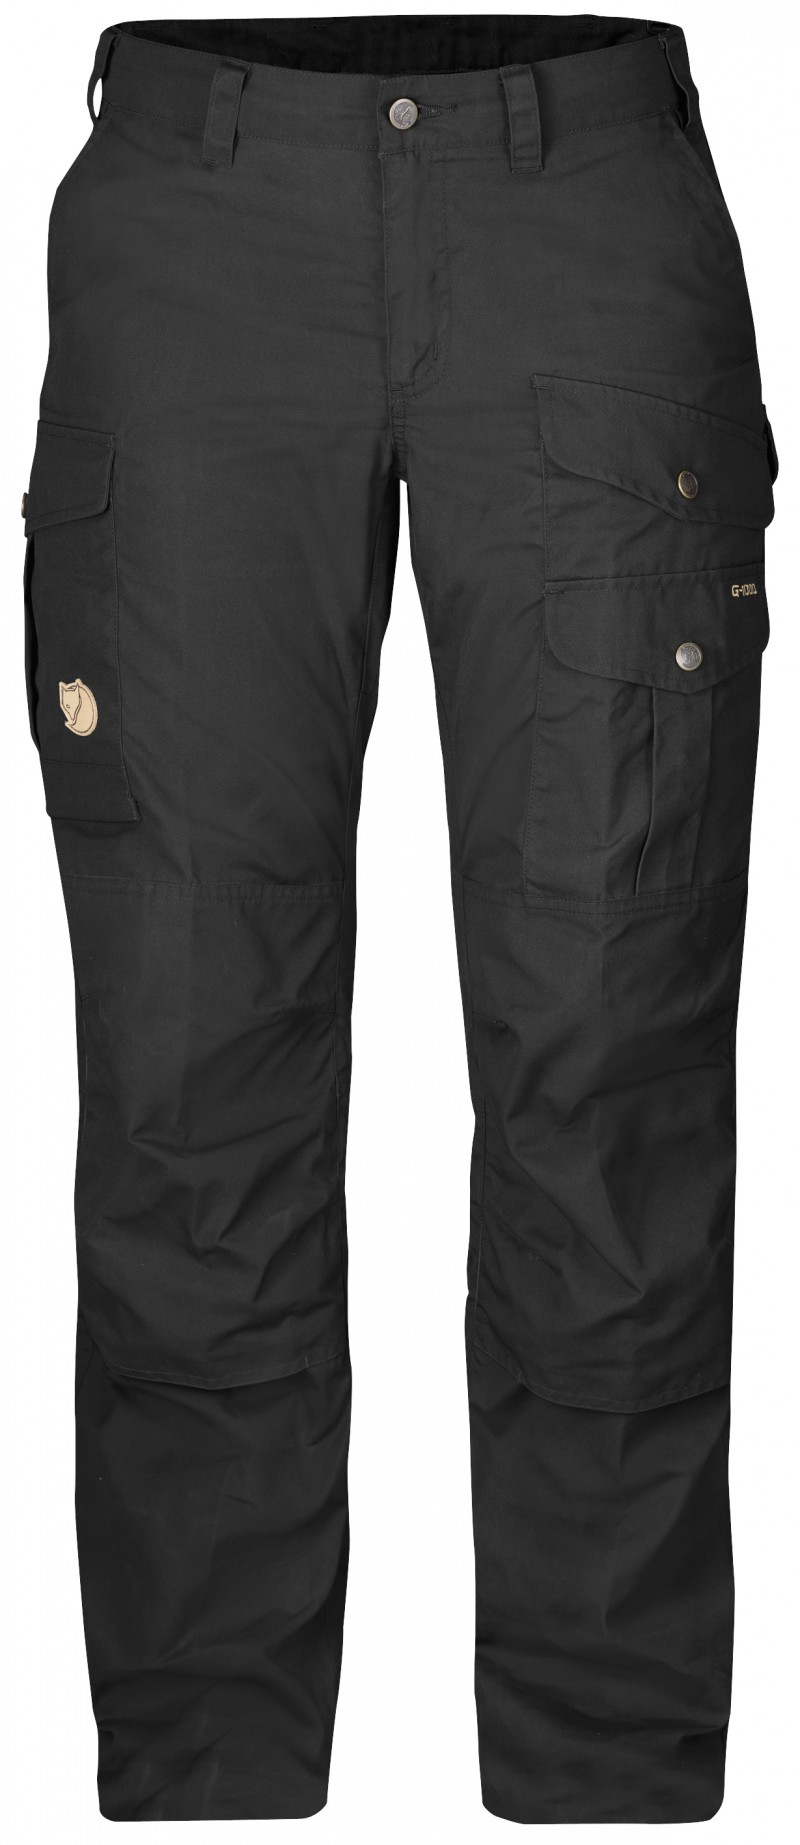 FjallRaven - Barents Pro W. Black-Black - Travel Pants - 38